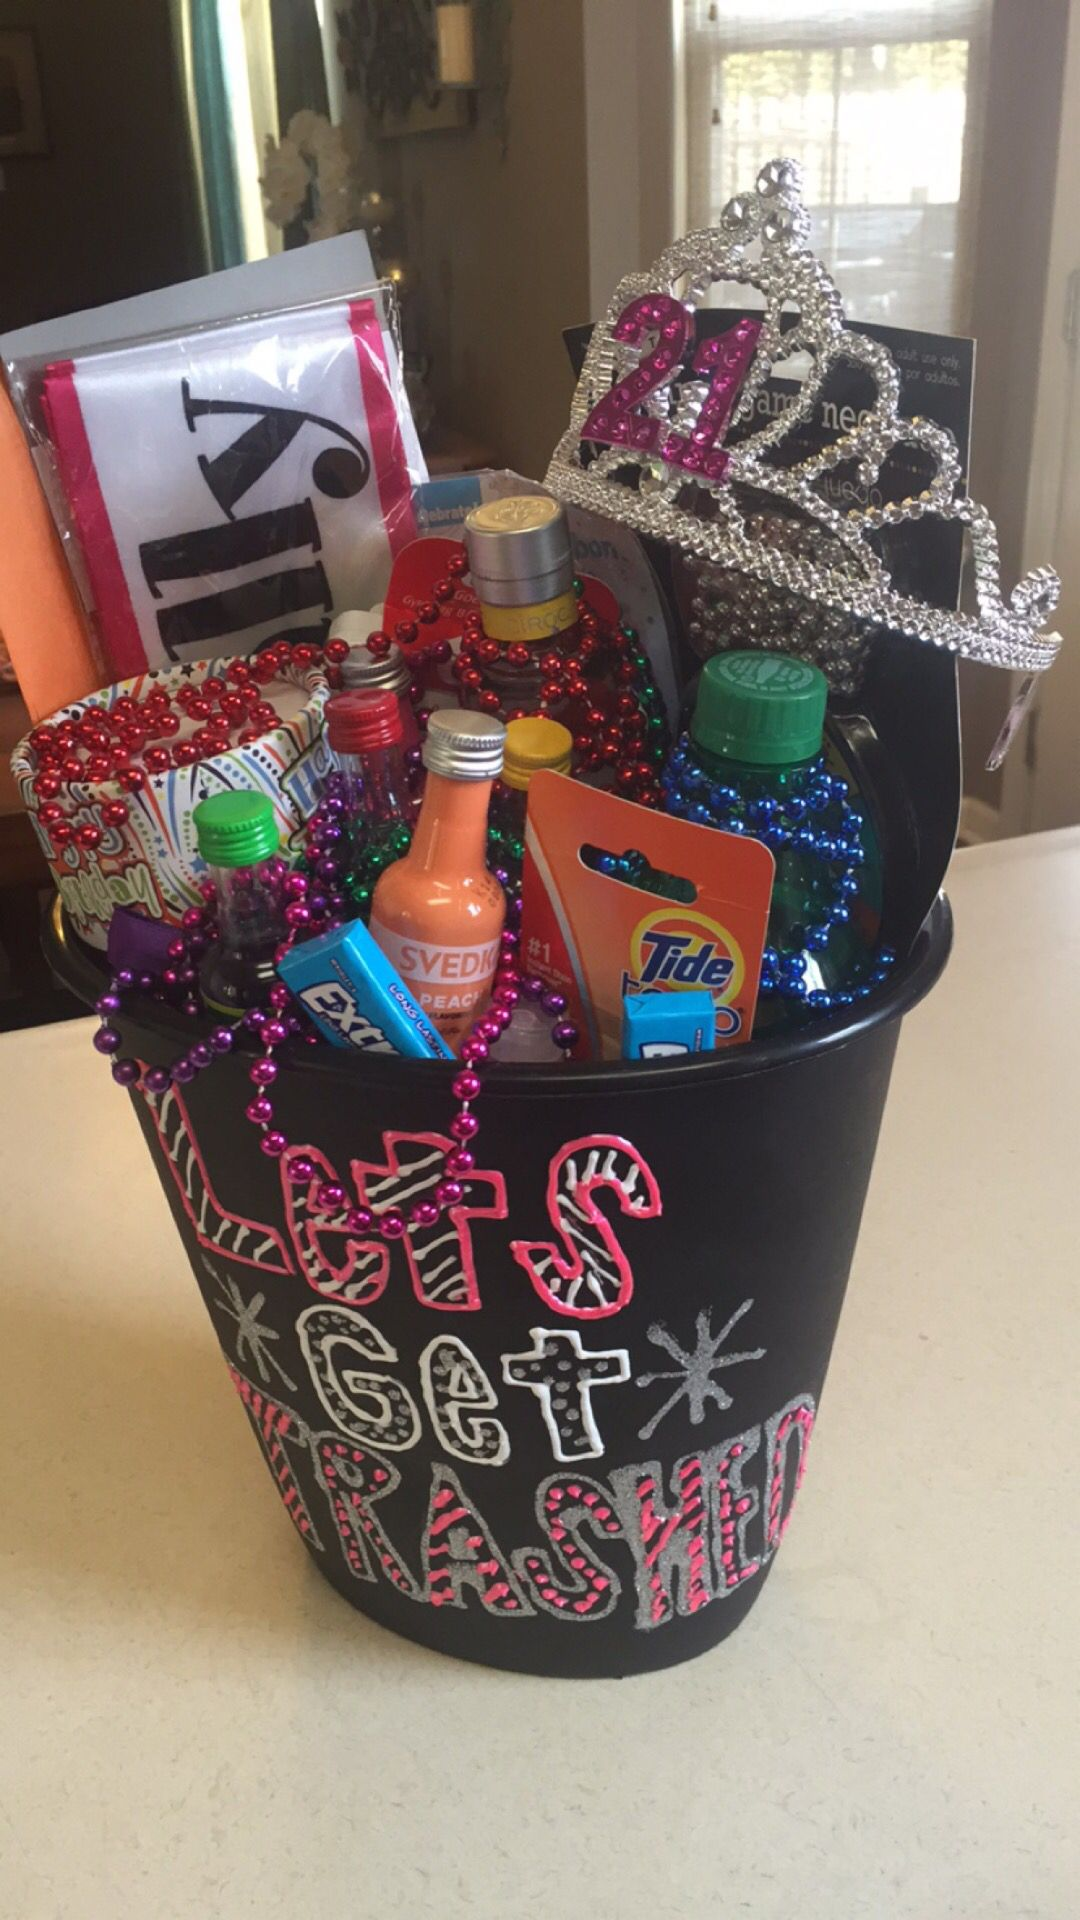 21st birthday presents 21st birthday gift! In a trash can saying